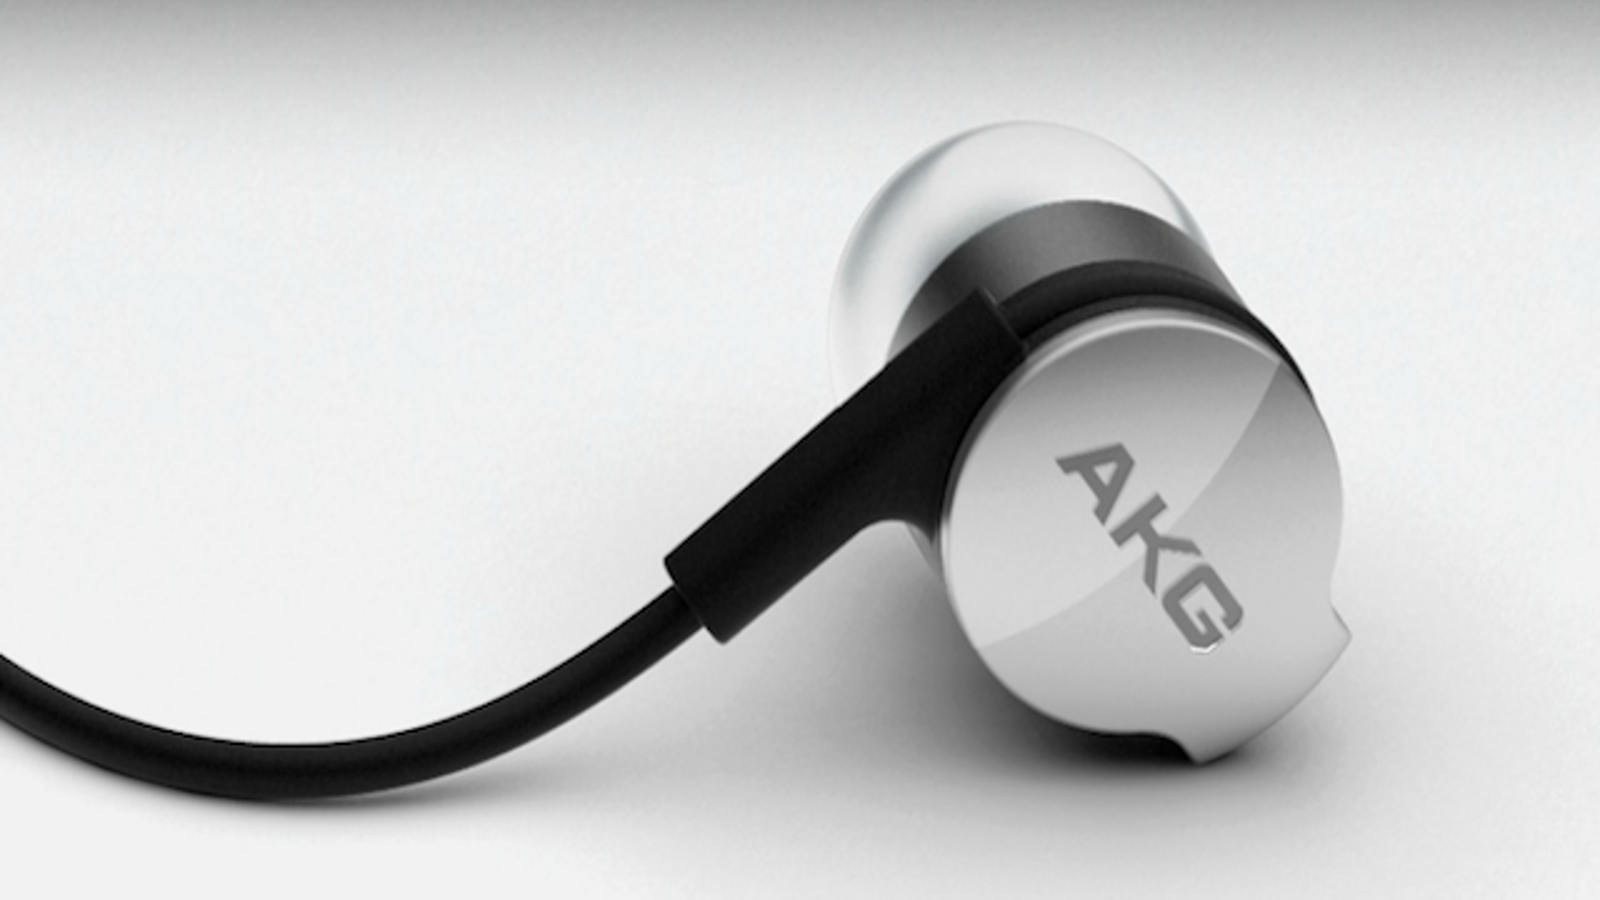 earbud wireless headphones bose - The AKG K3003s Are Easy on the Eyes, but Nary a Soul Will Buy